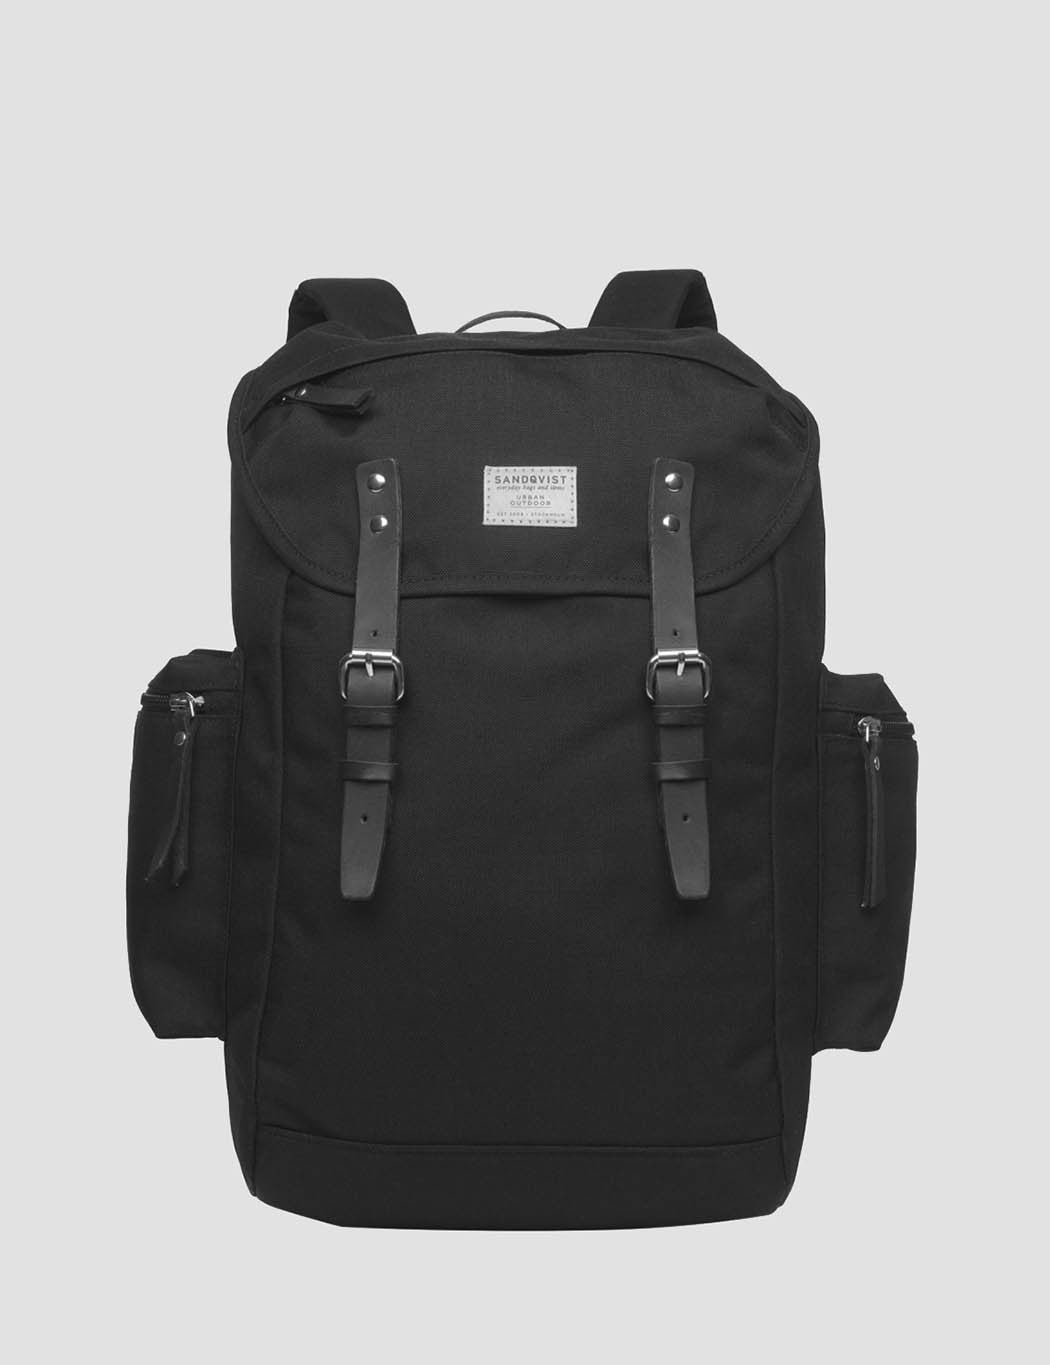 Sandqvist Lars Goran Backpack (Canvas) - Black